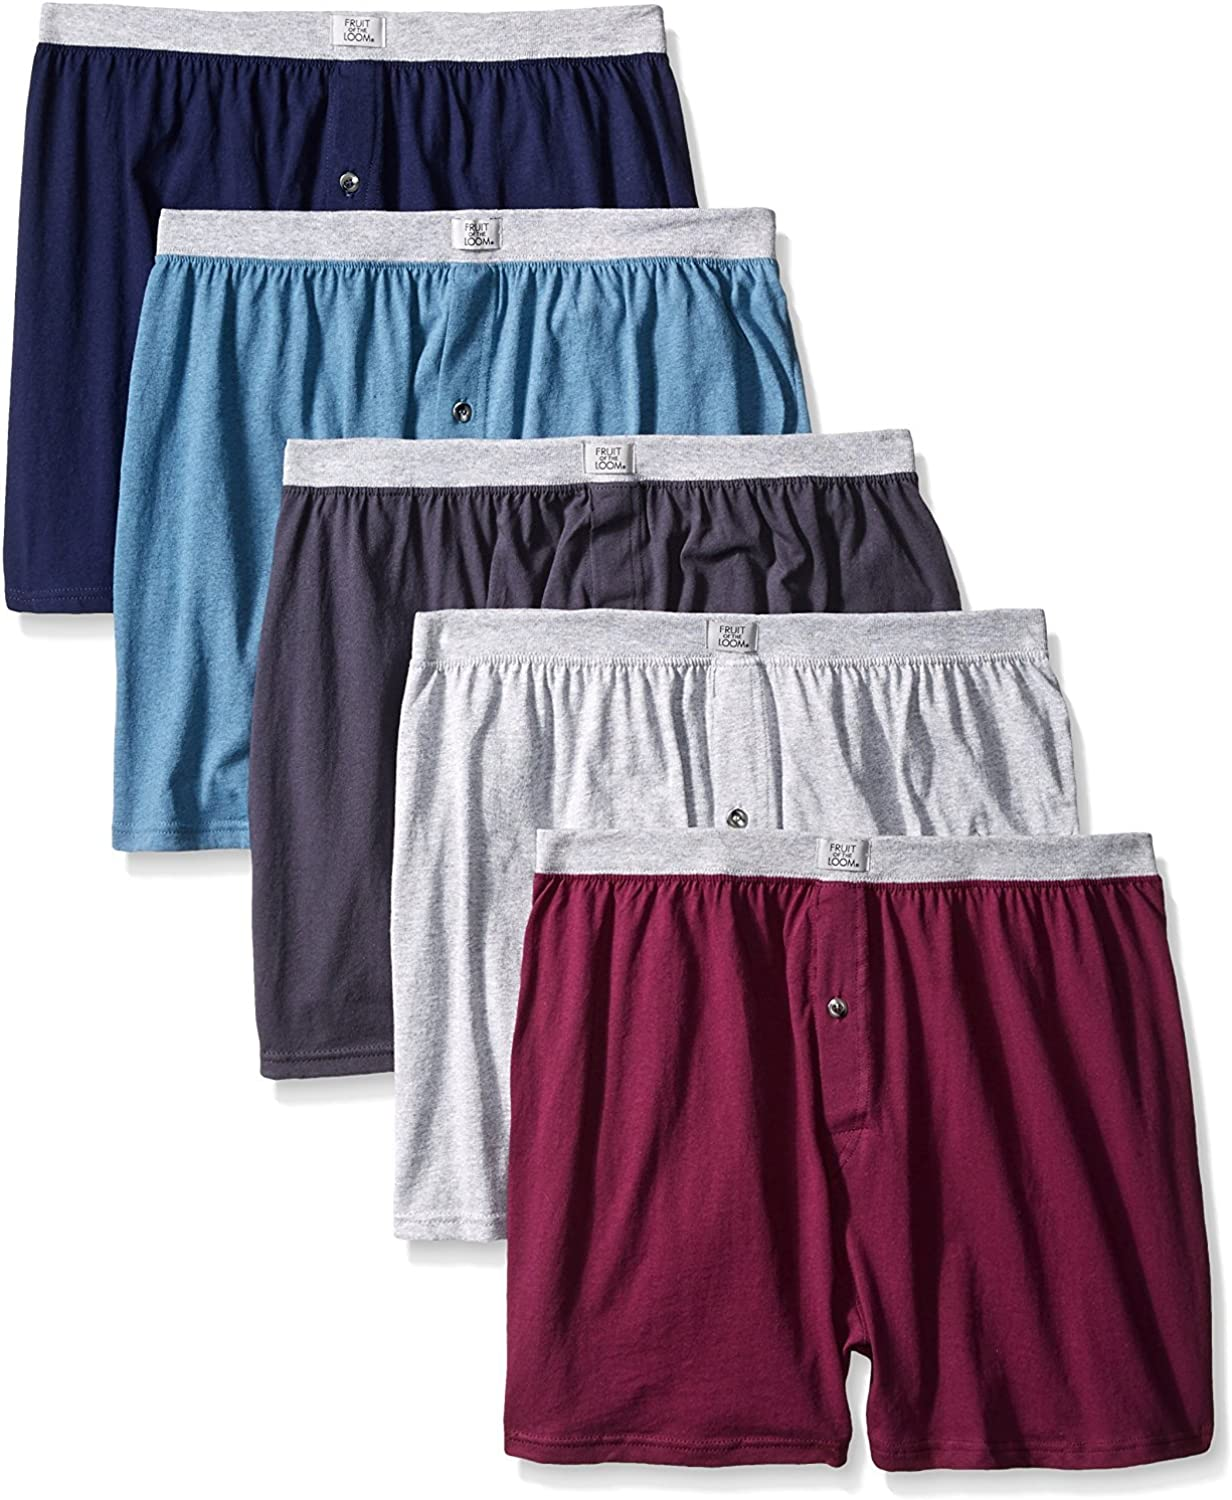 Multi Color Fruit of the Loom Mens 5Pack Knit Boxer Shorts Boxers Cotton Underwear 3XL